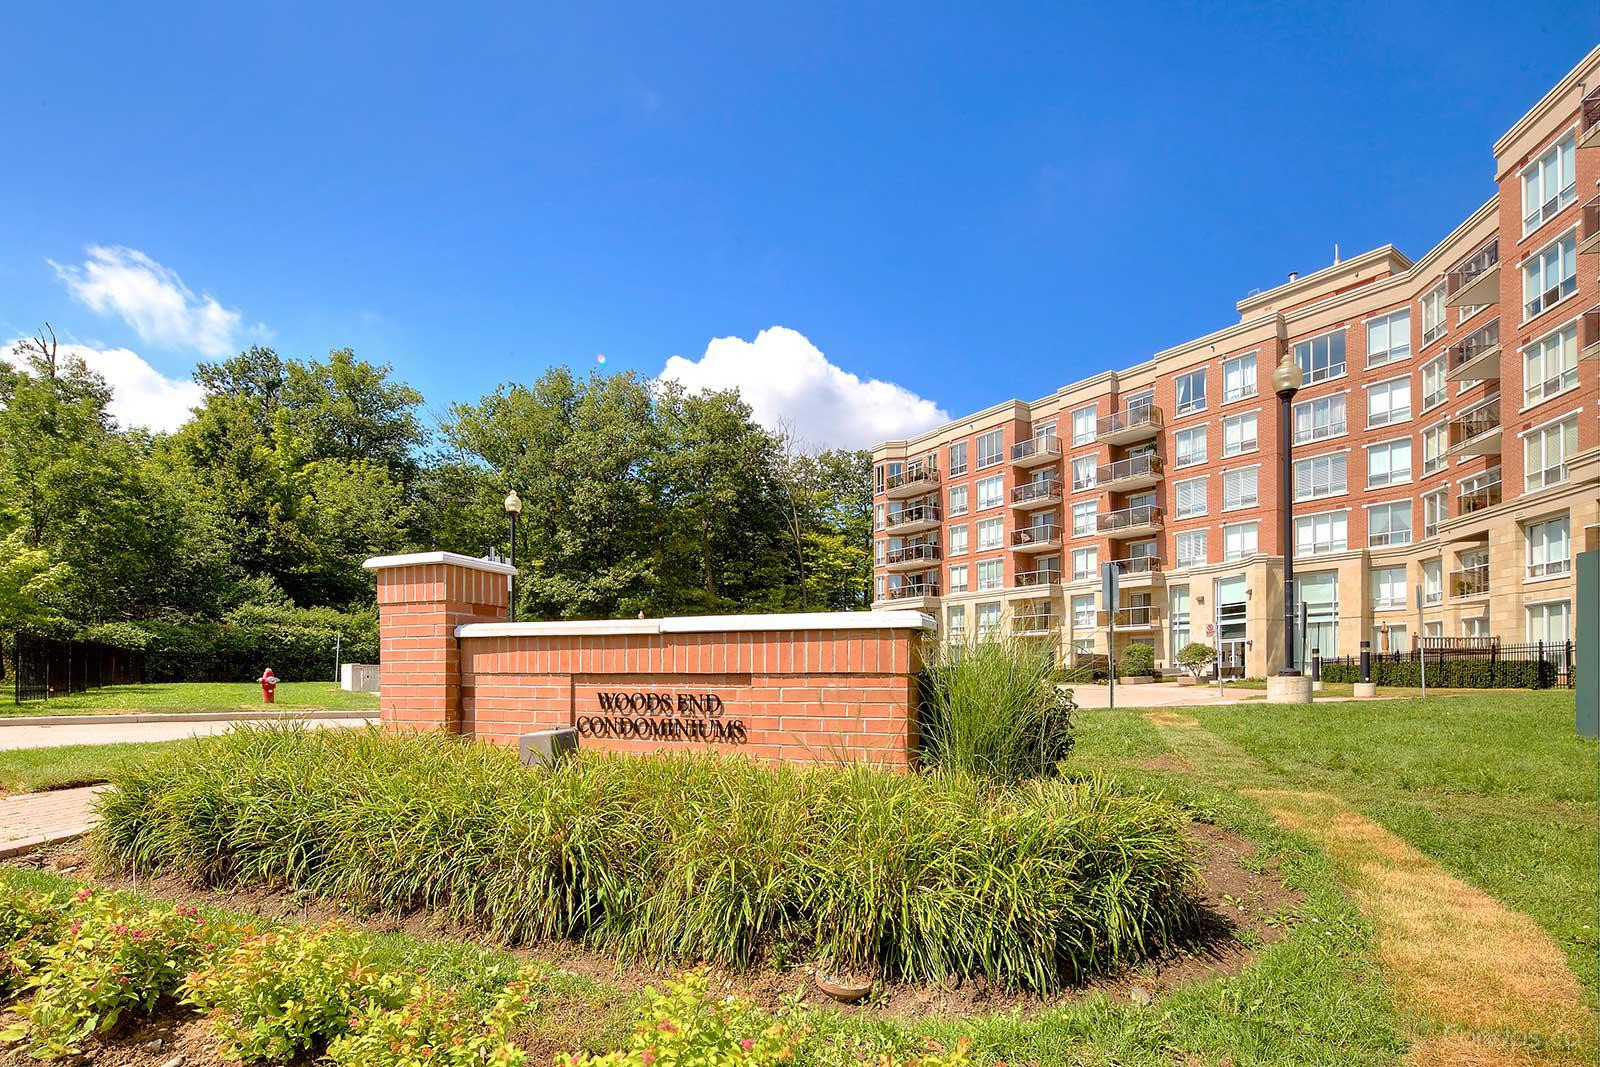 Woods End Condominiums at 483 Faith Dr, Mississauga 1